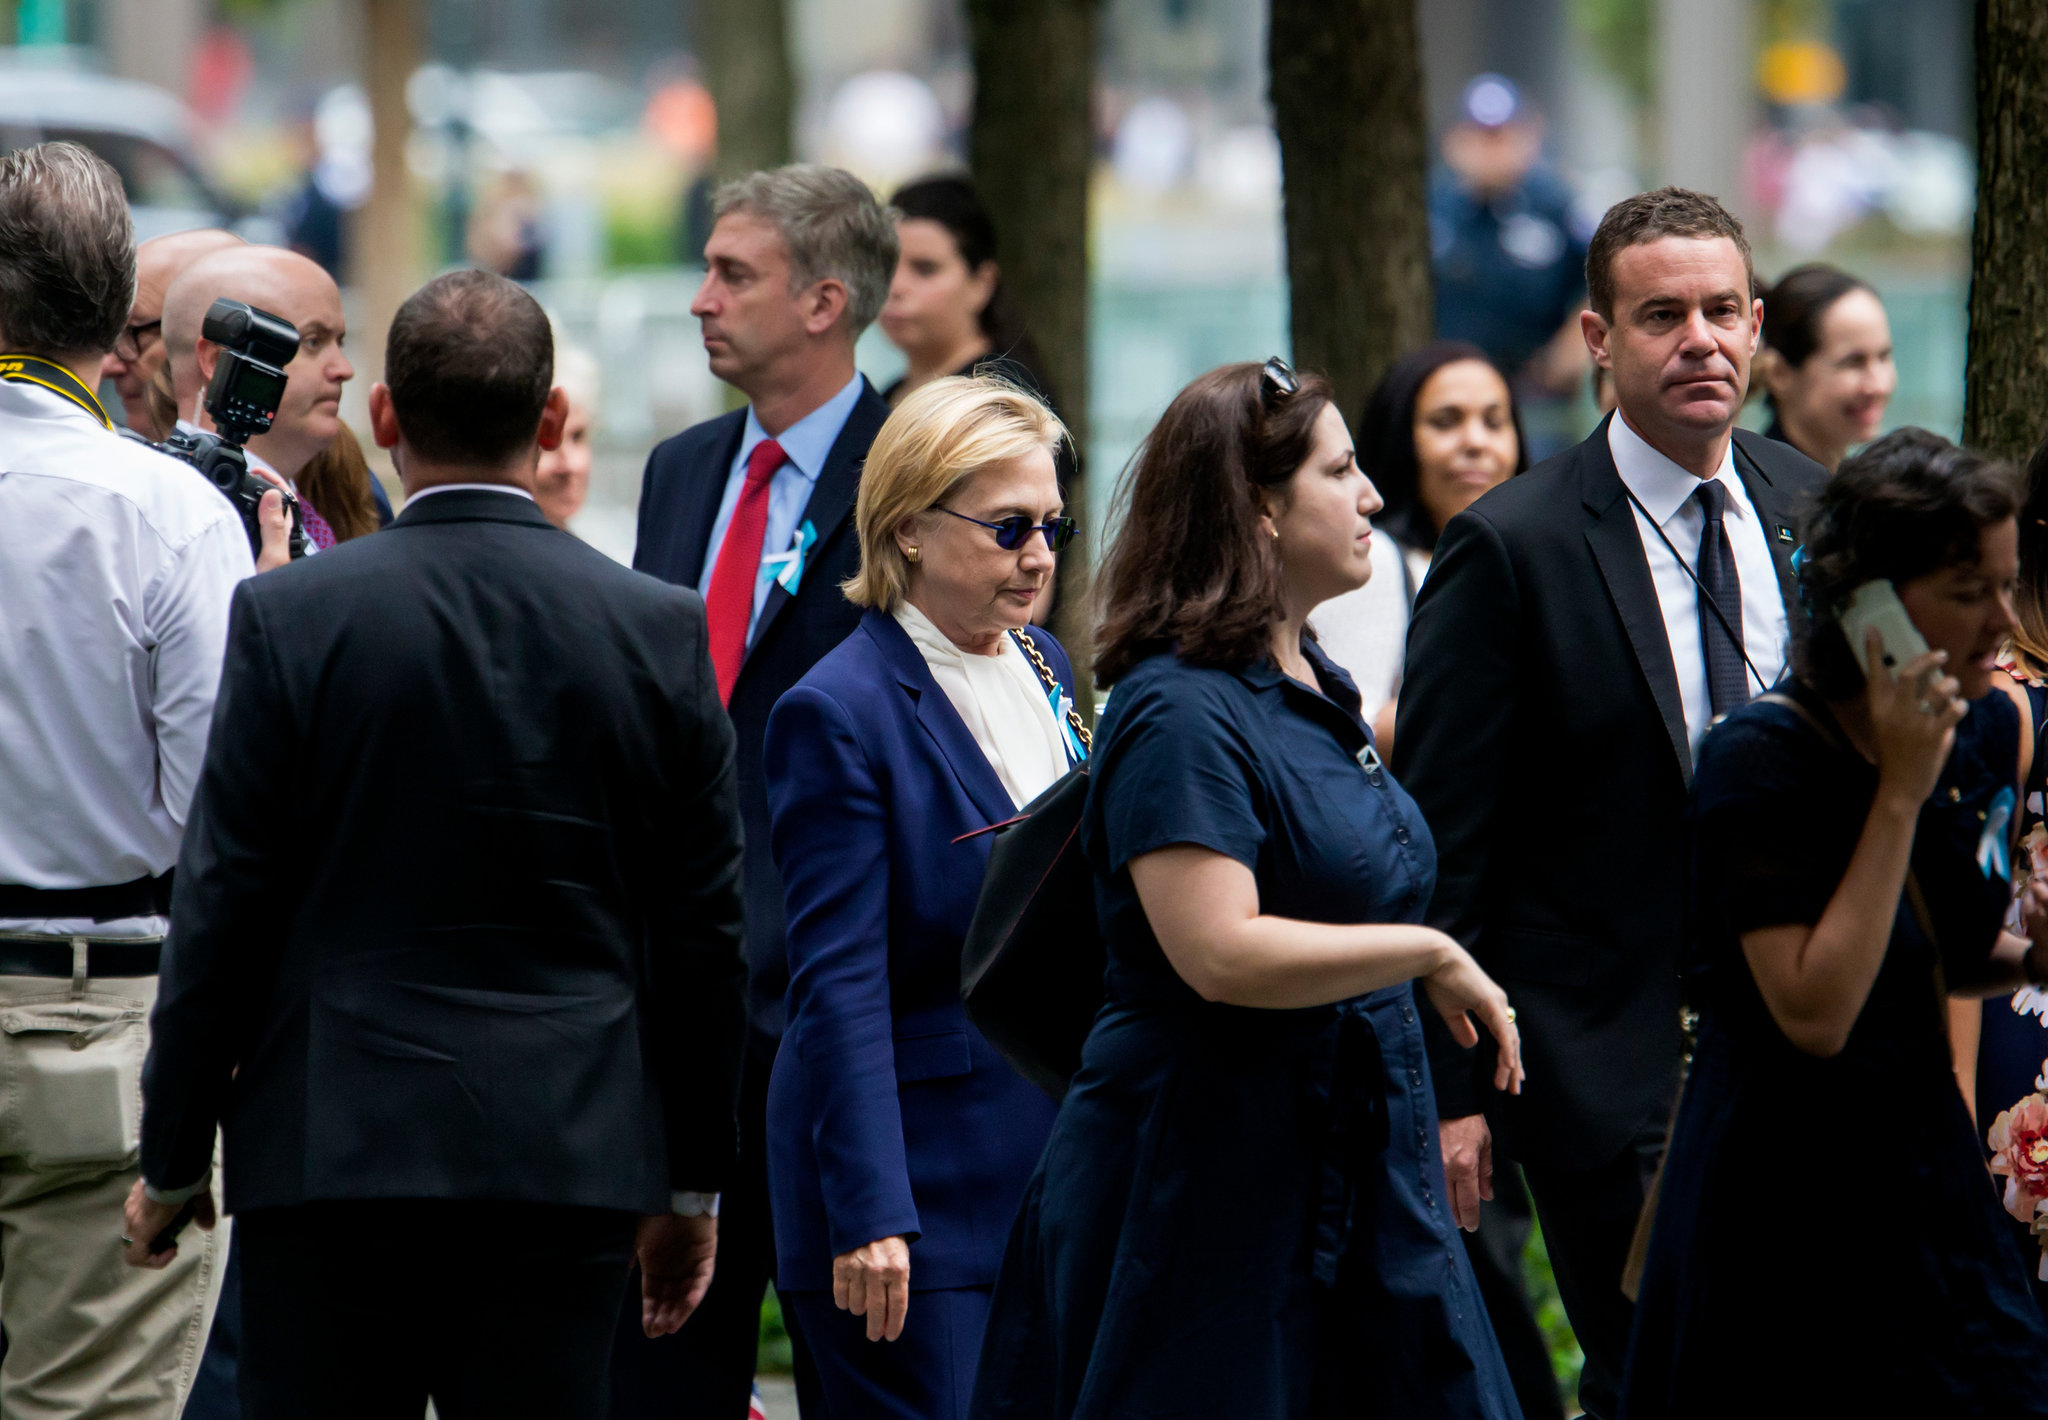 hillary clinton briefly appeared